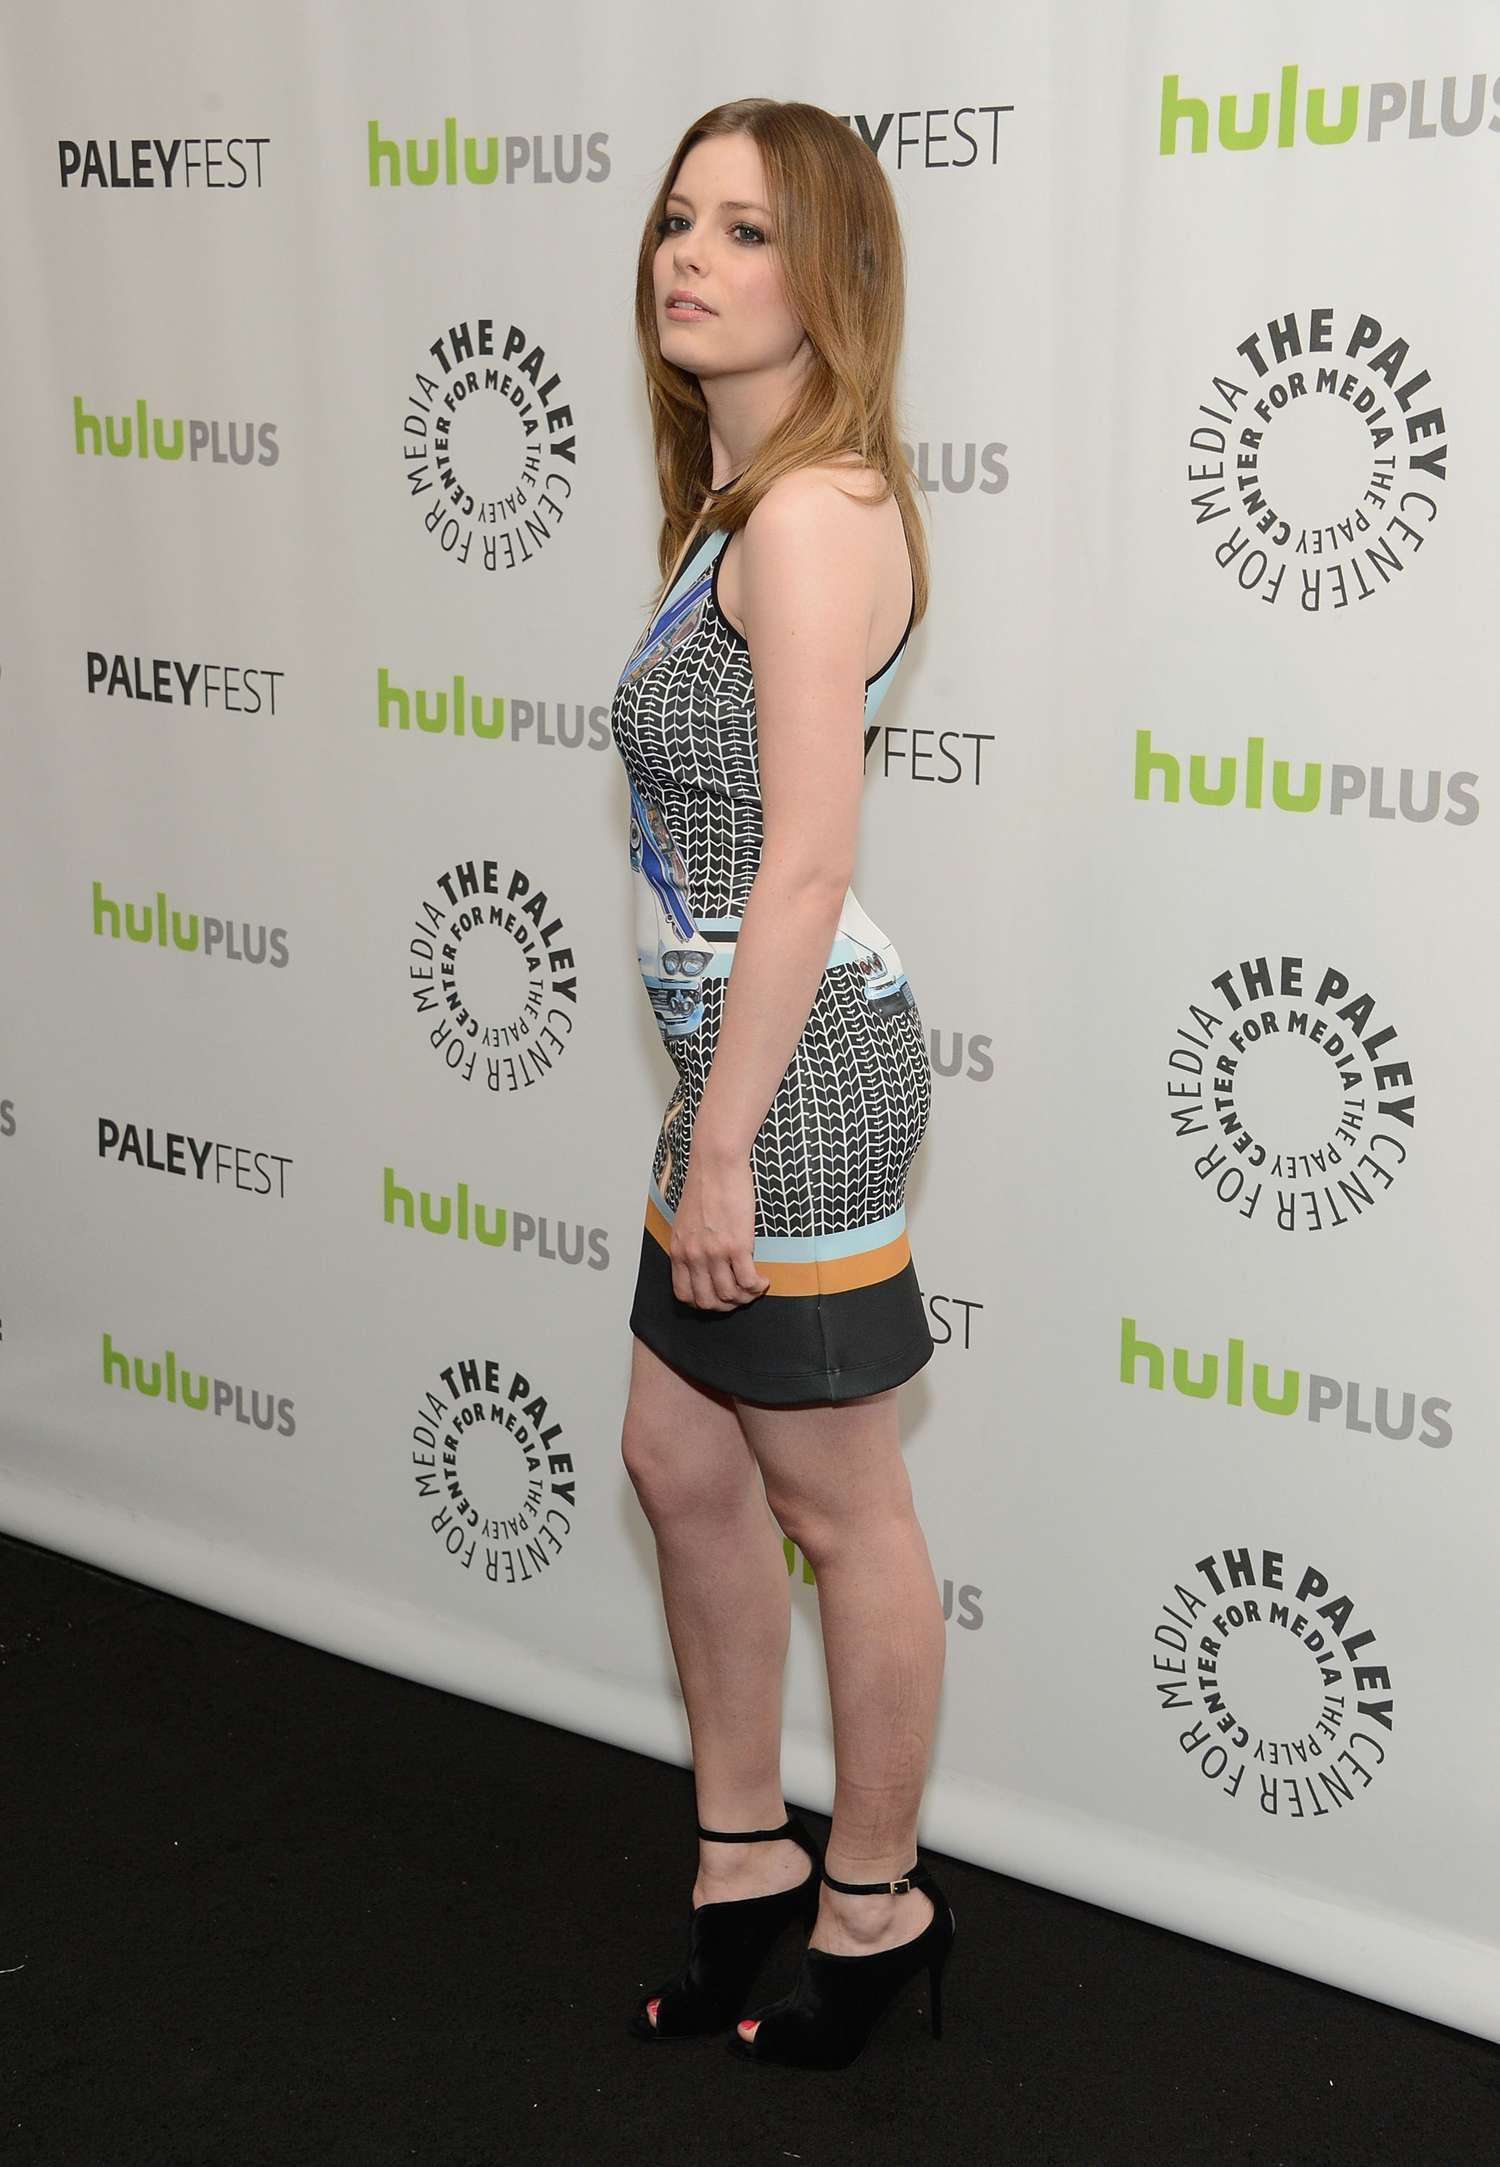 gillian jacobs fan site